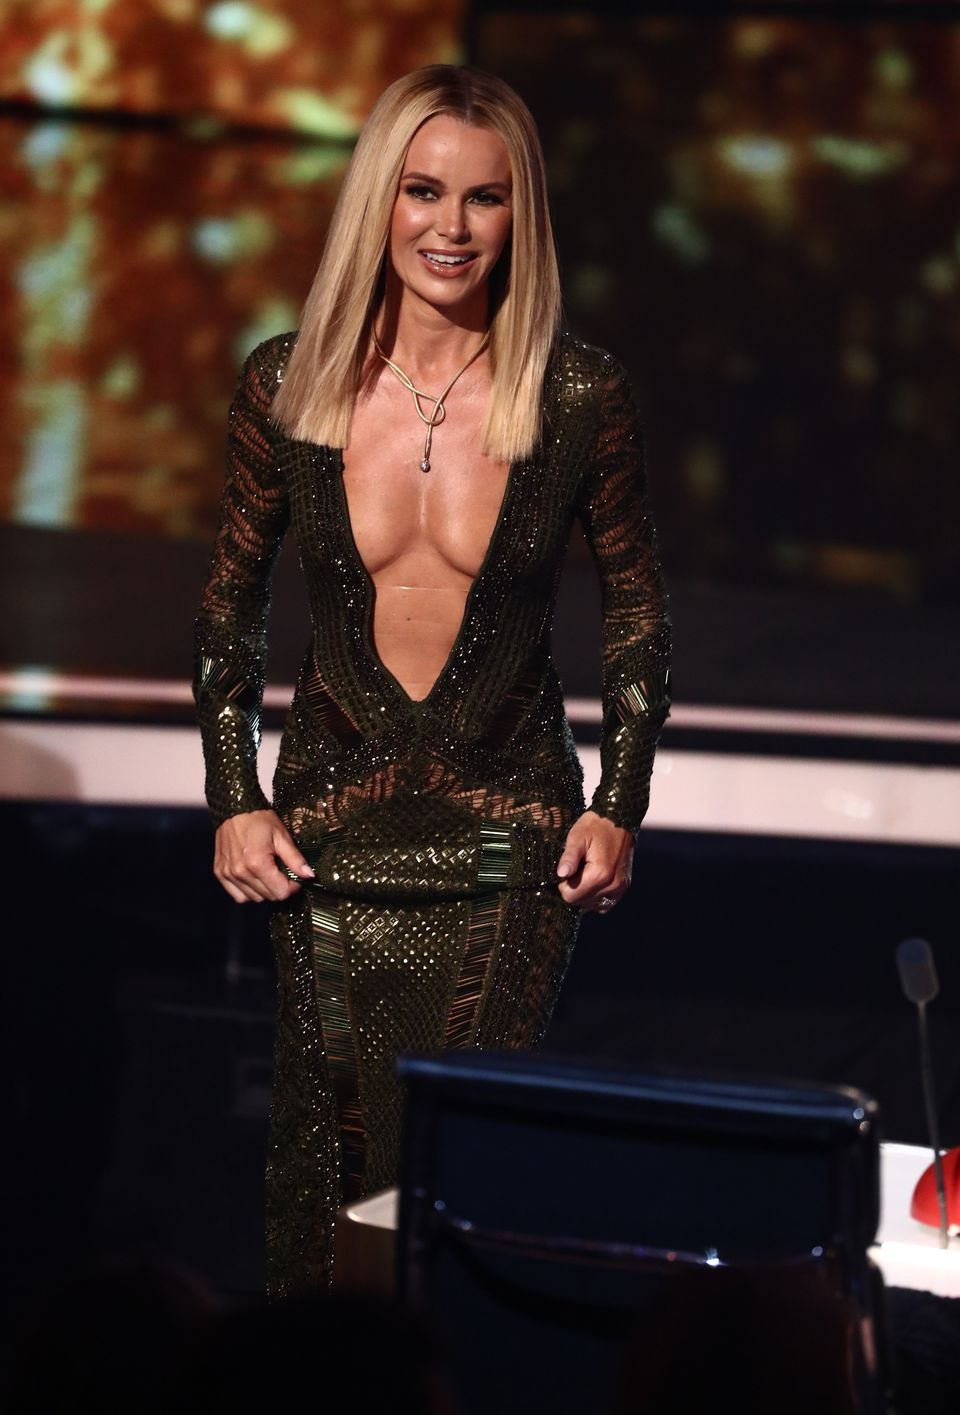 Amanda's Britain's Got Talent outfits are always a talking